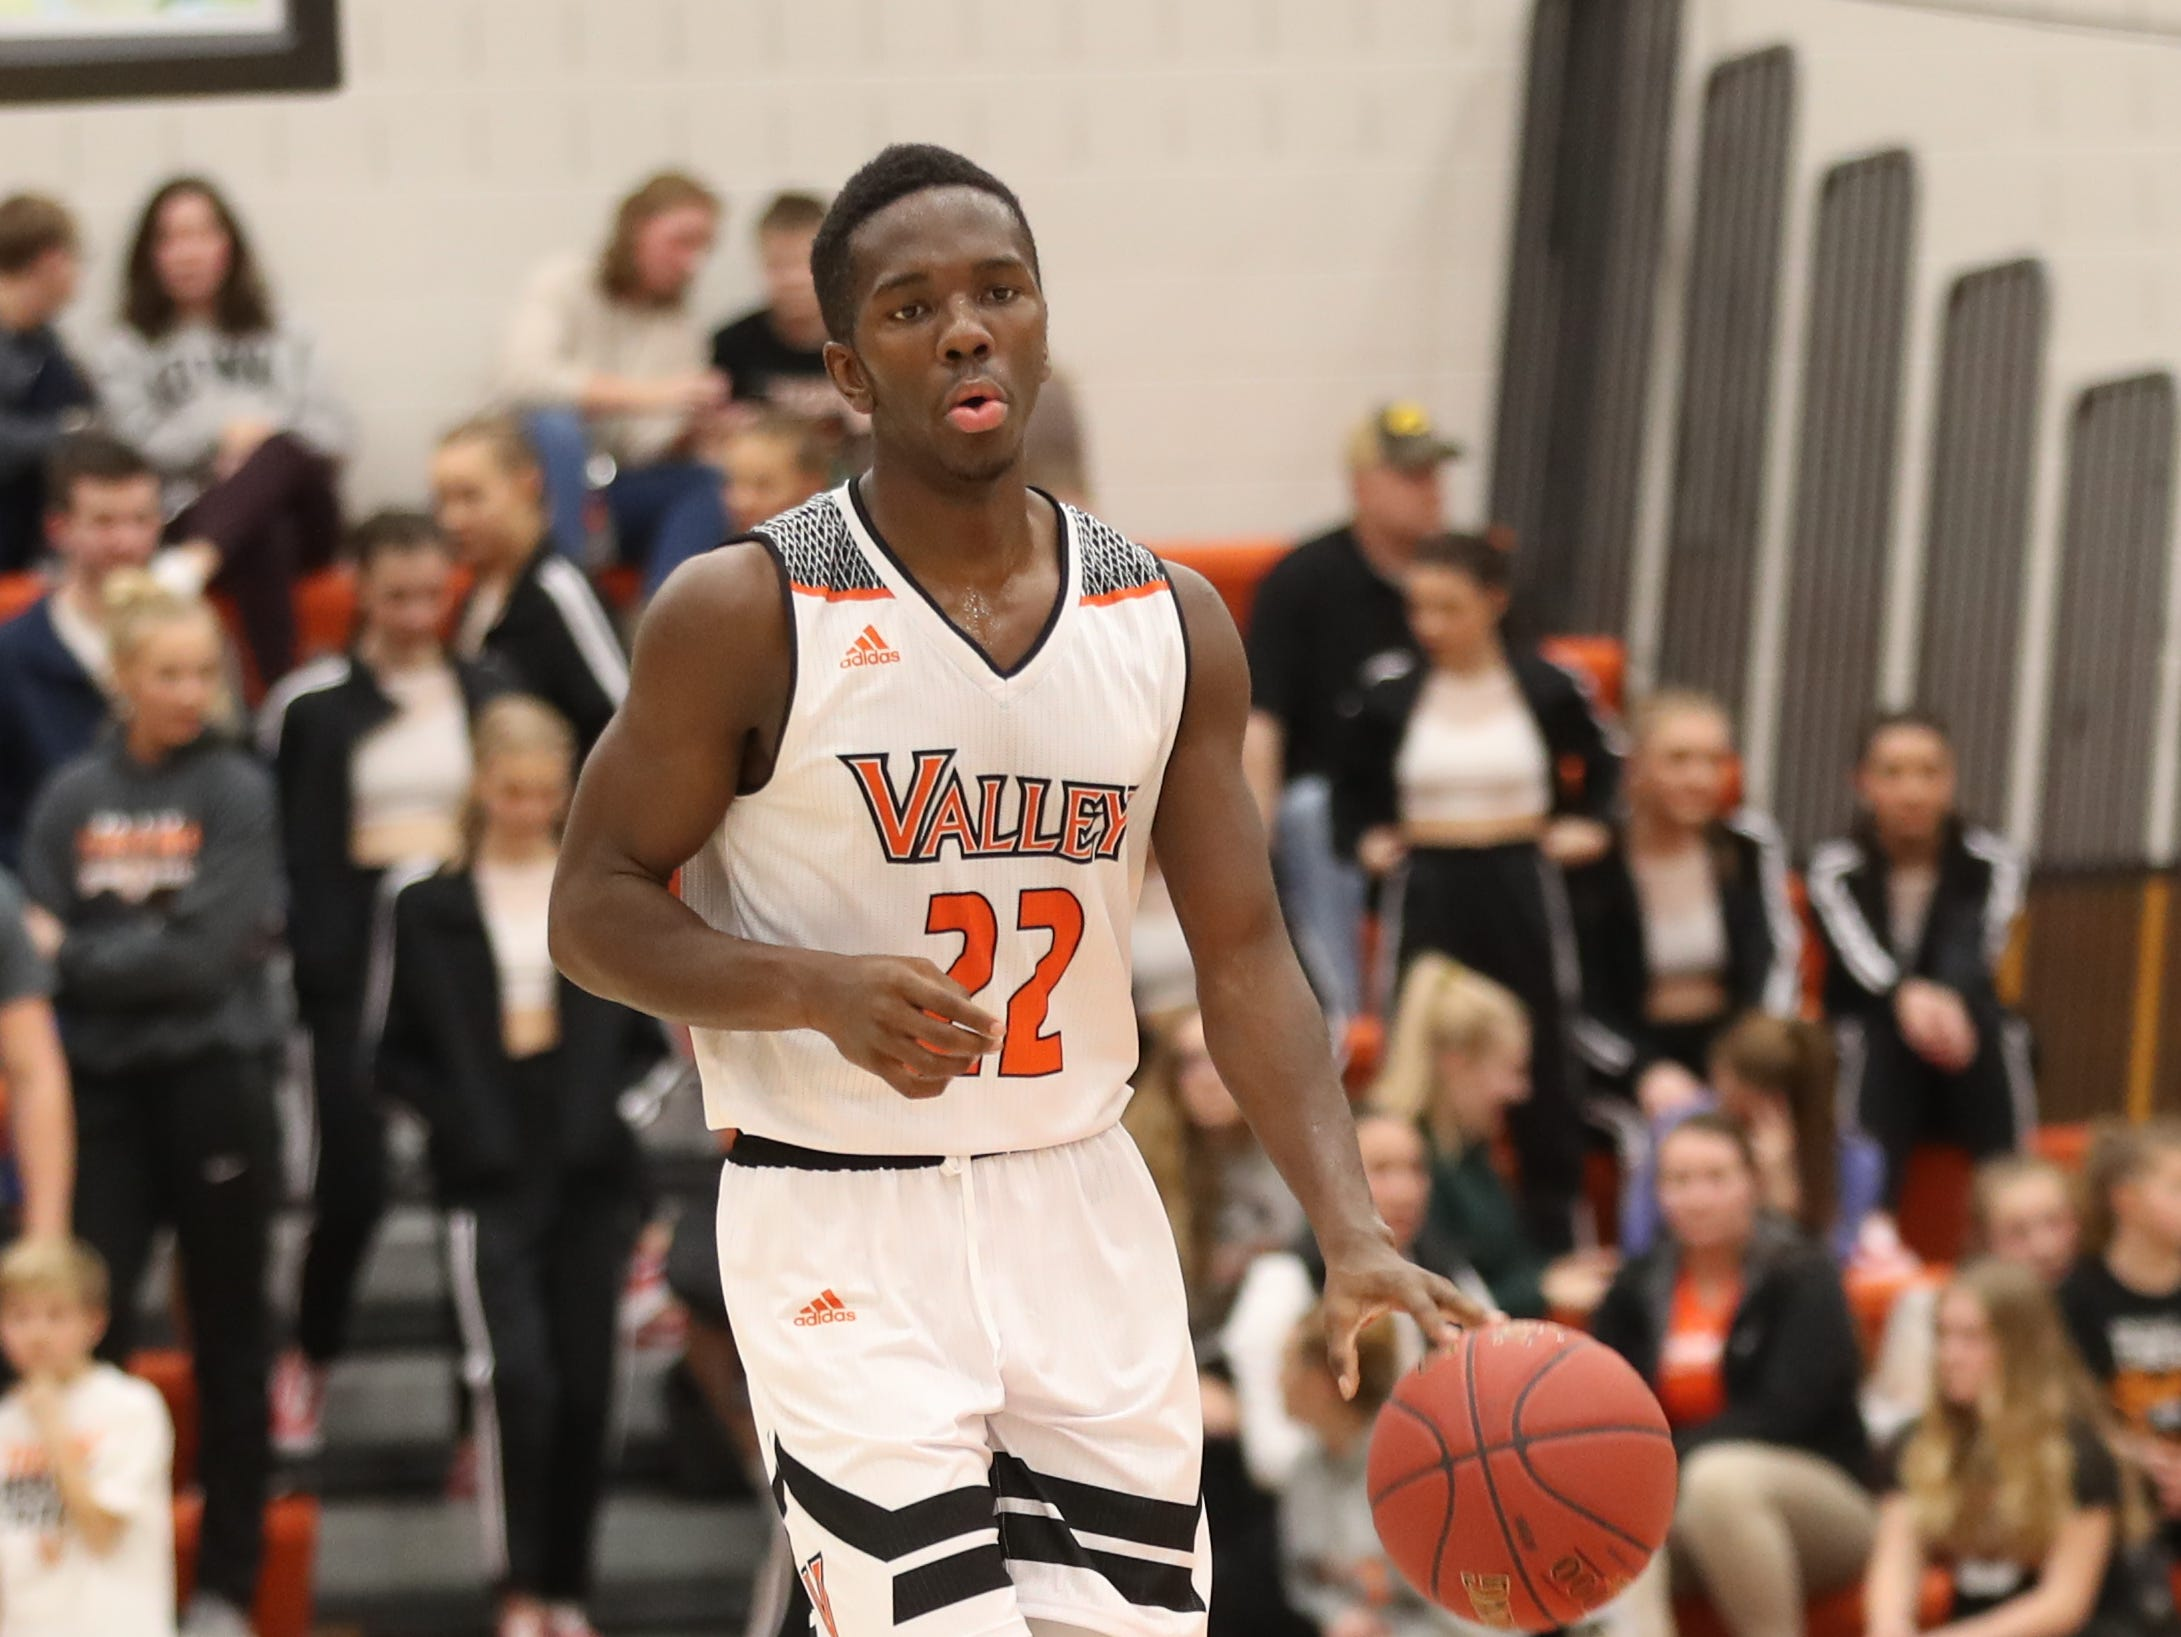 Valley Tigers' Trayvon Williams (22) sets the offense against the Southeast Polk Rams during a boys basketball game at Valley High School on Jan. 11, 2019. Valley won, 61-54.